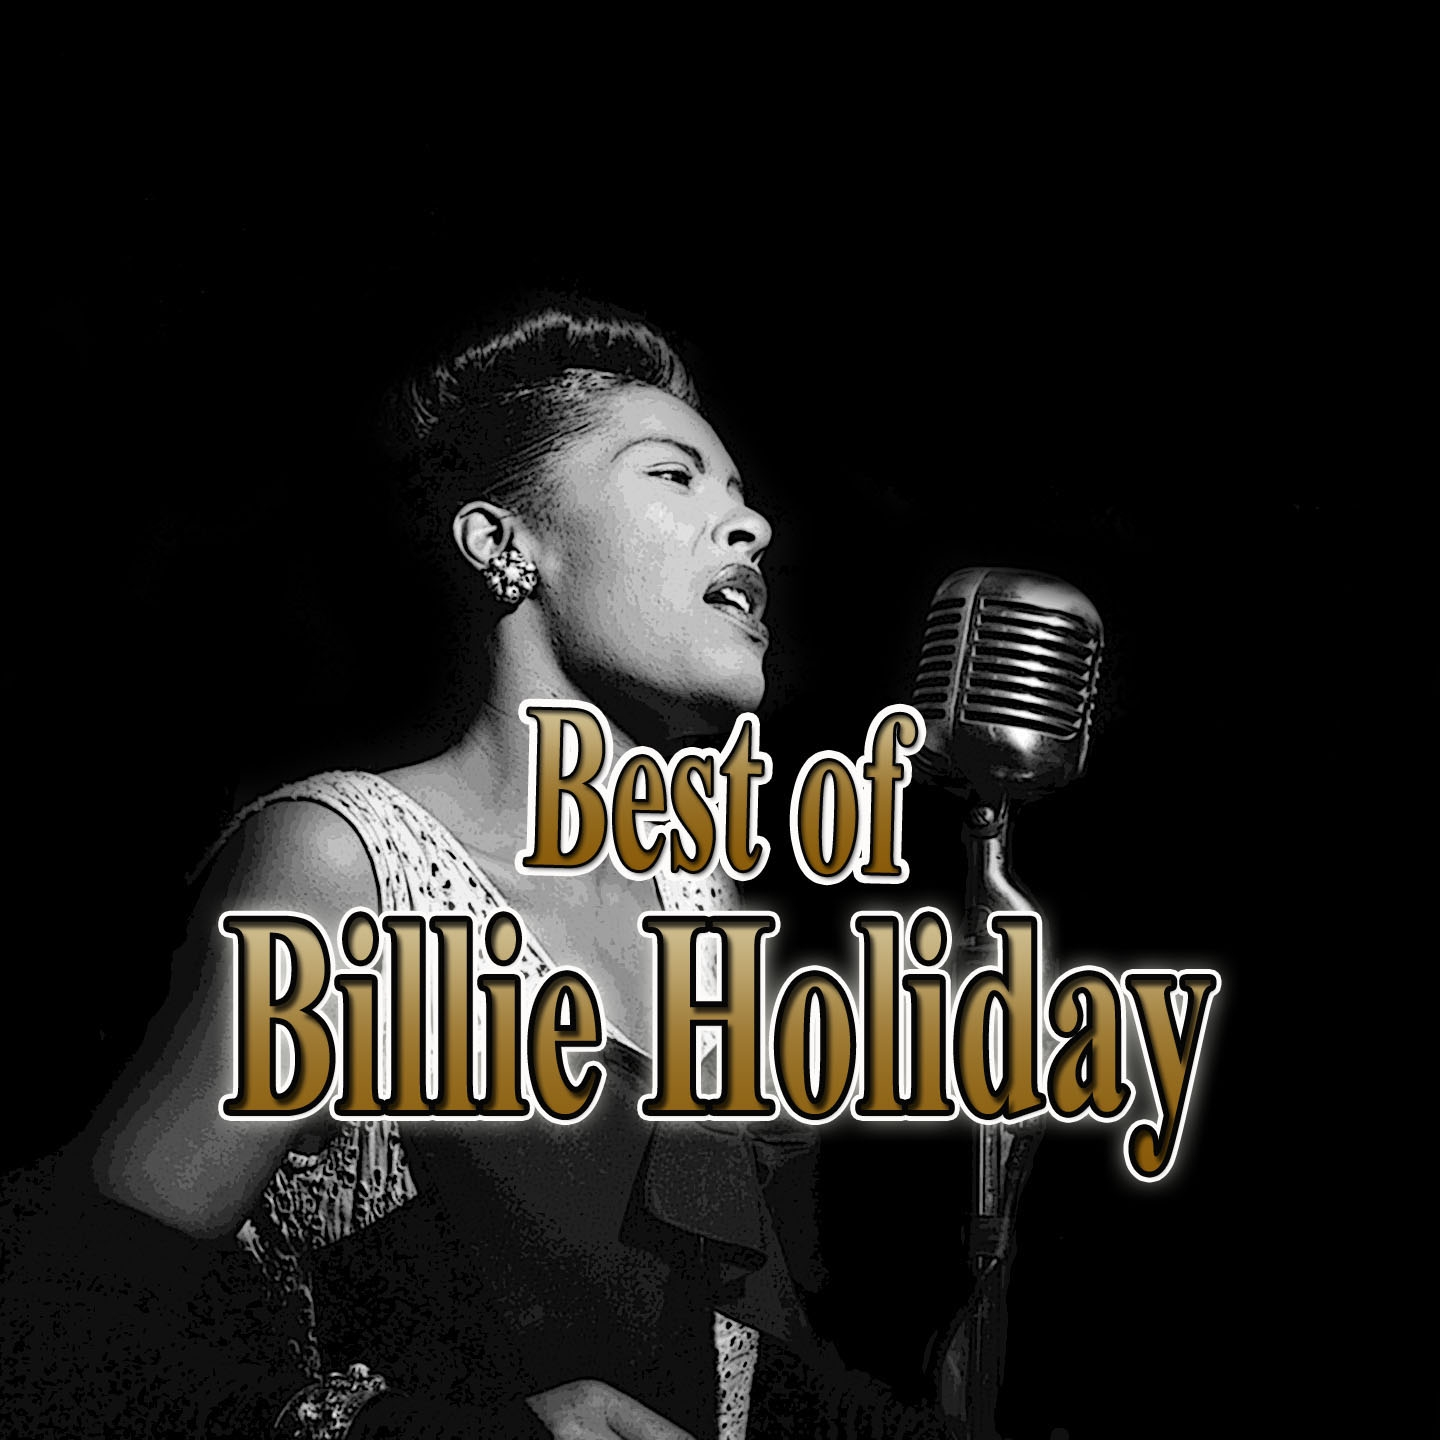 2- The Best of Billie Holiday - On the Sunny Side of the Street, All of Me, And 23 Other Hits